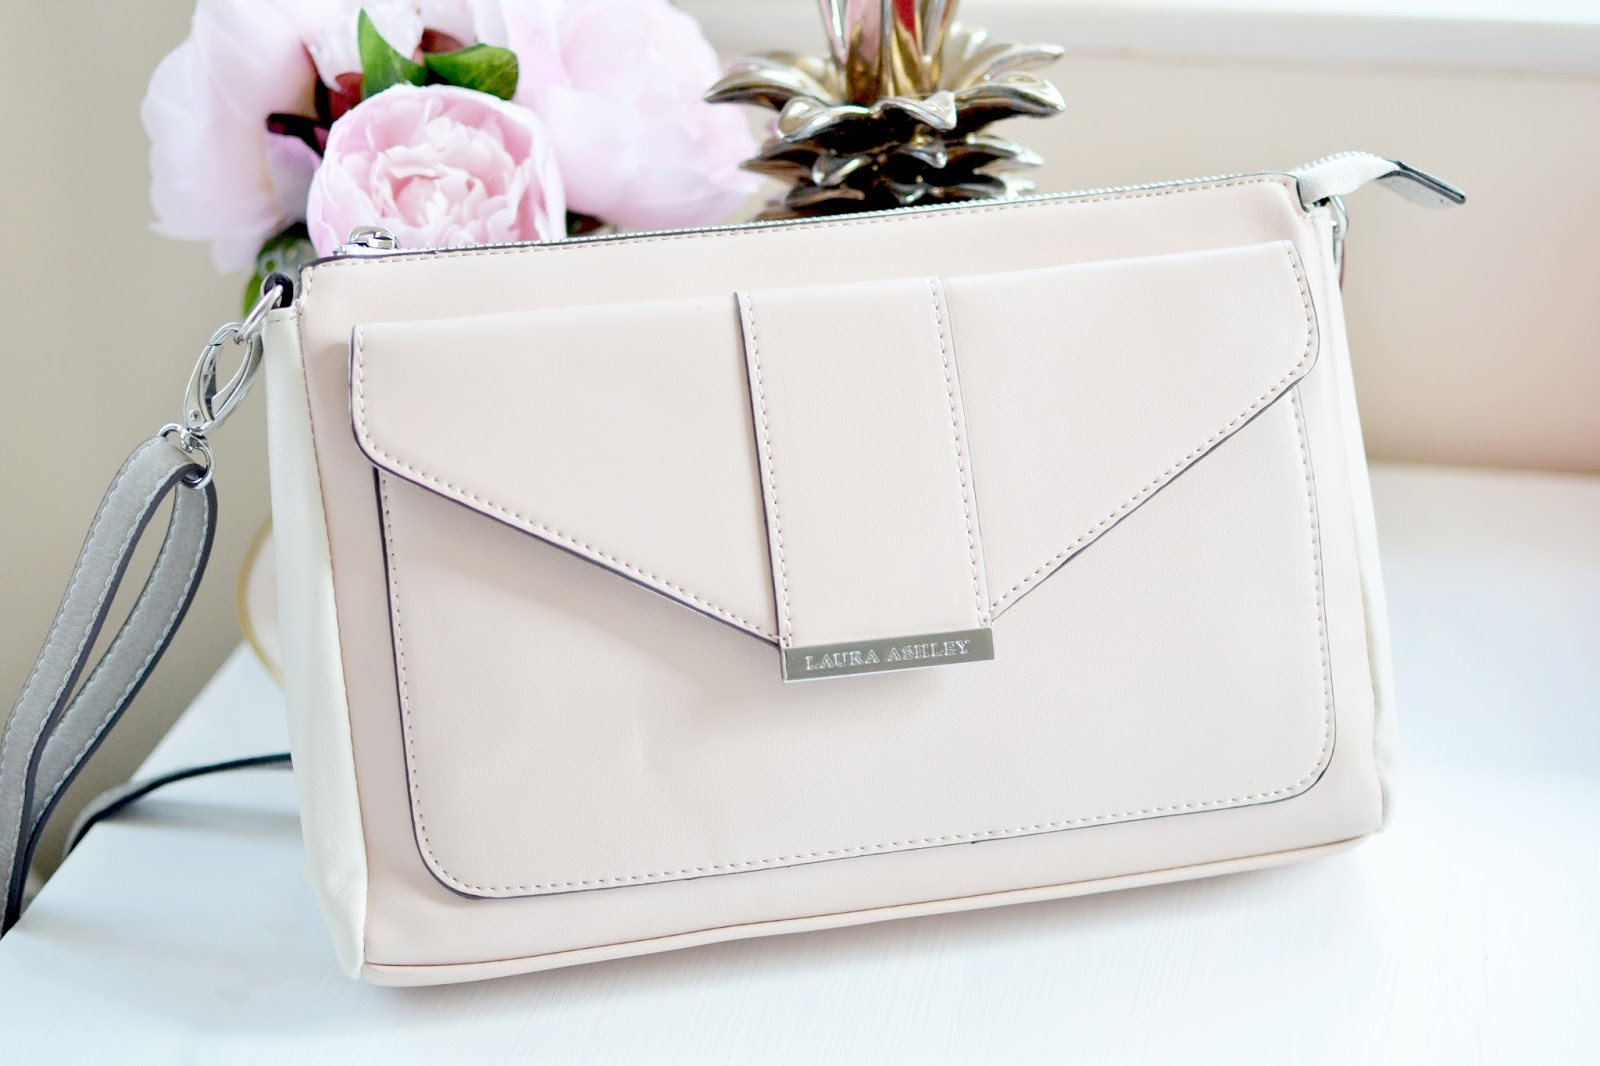 fashion blogger uk, pink bag, laura ashley bag